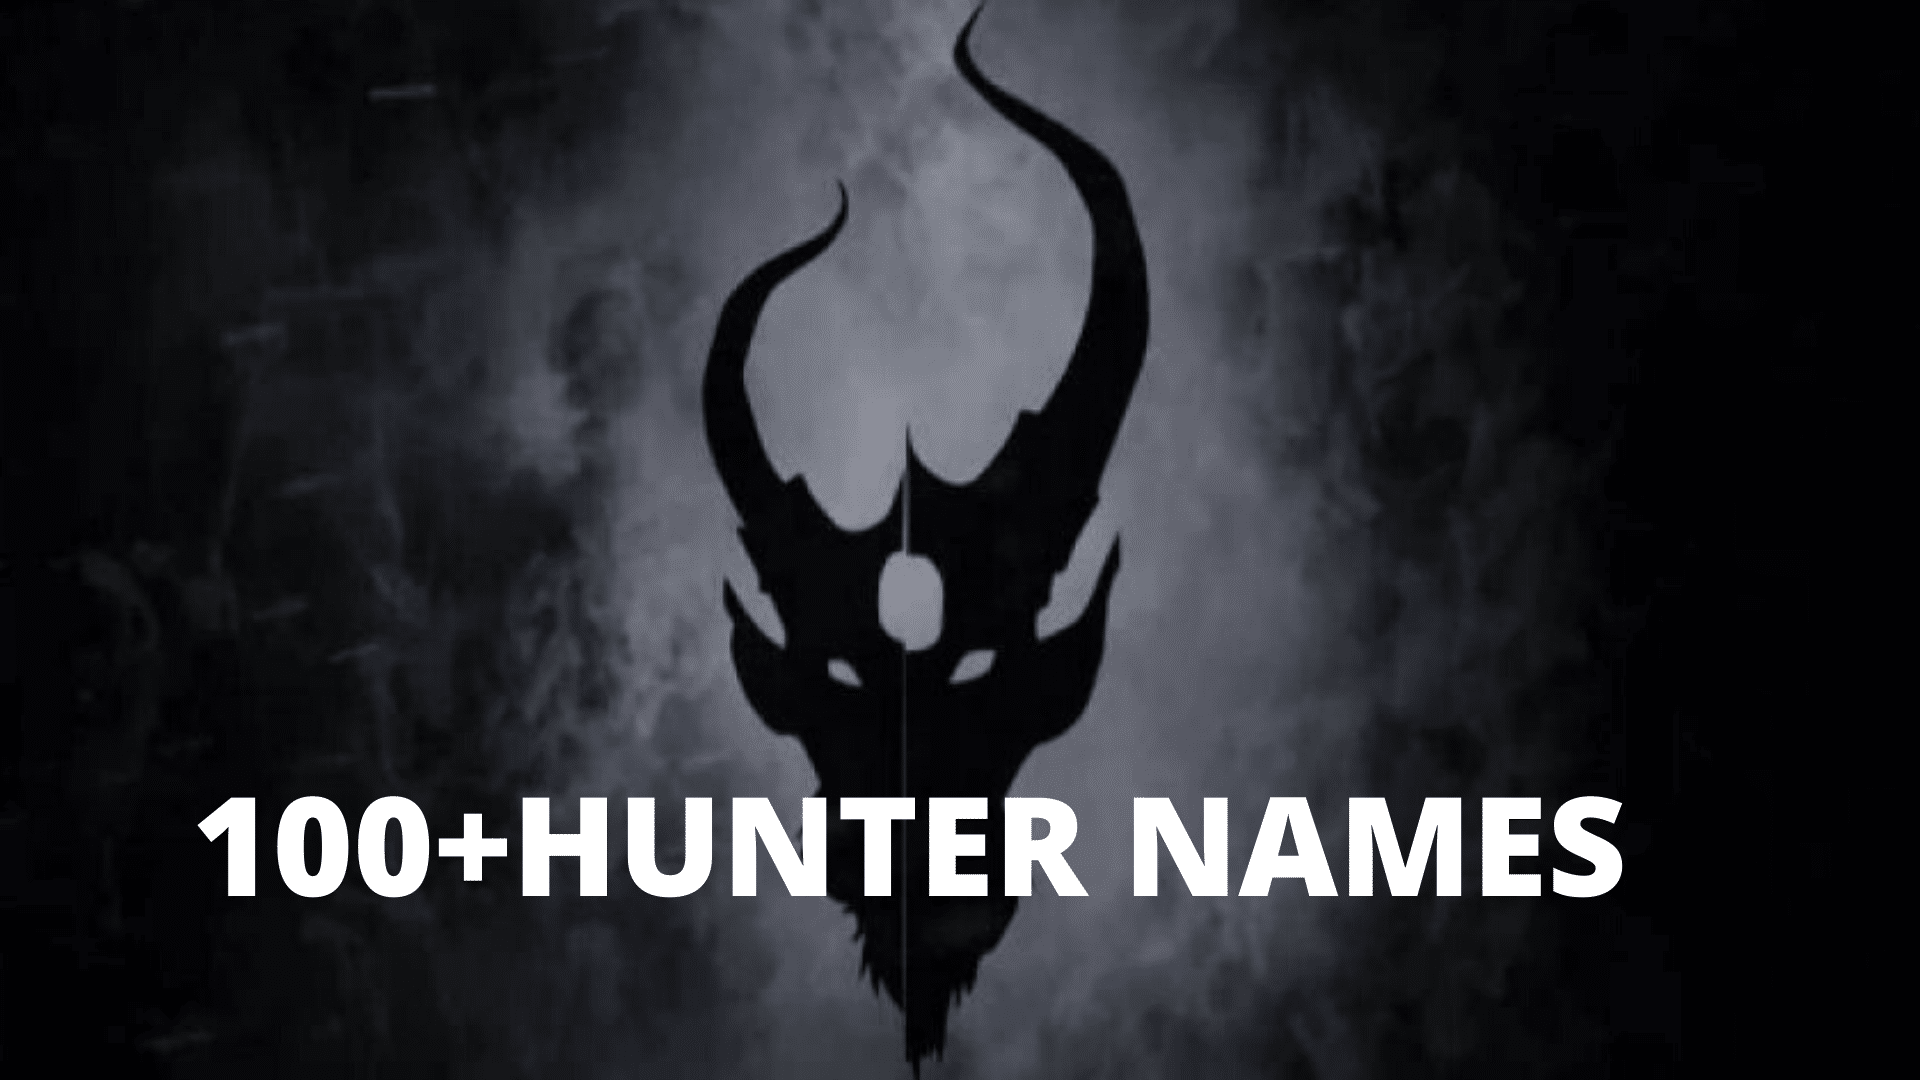 100+HUNTER NAMES 100+HUNTER NAMES 100+HUNTER NAMES